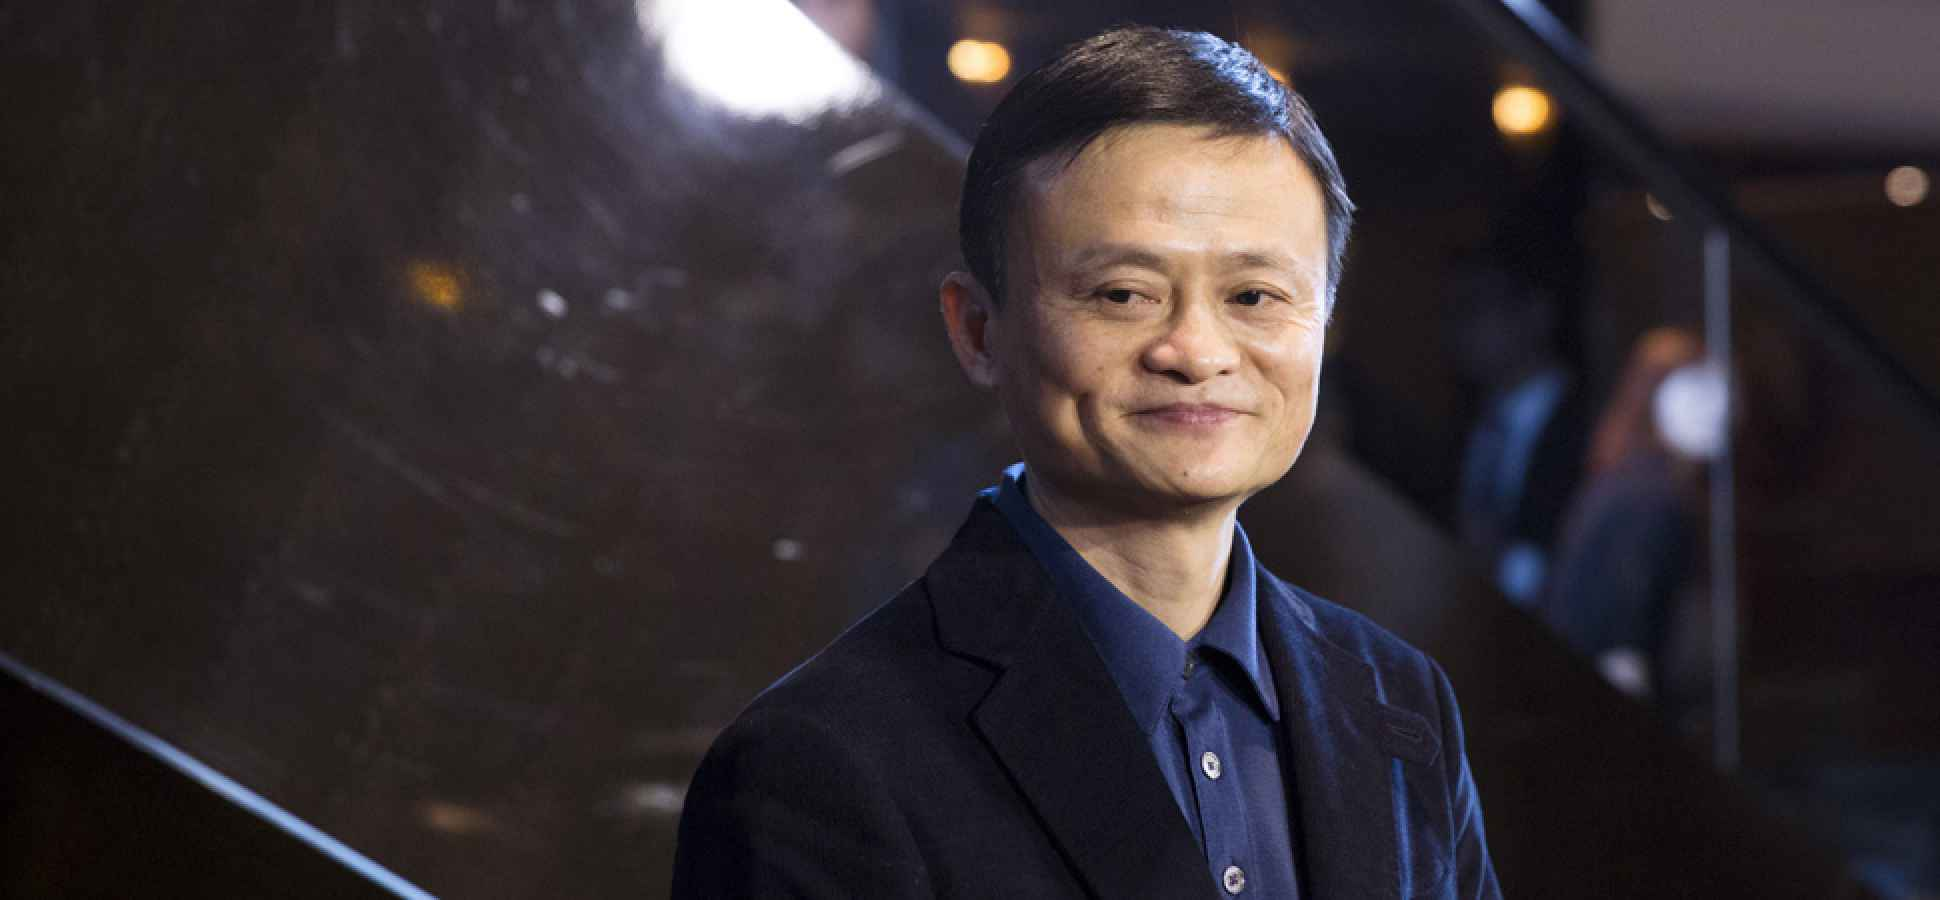 Alibaba's Jack Ma Says Life Was Better When He Earned Next to Nothing